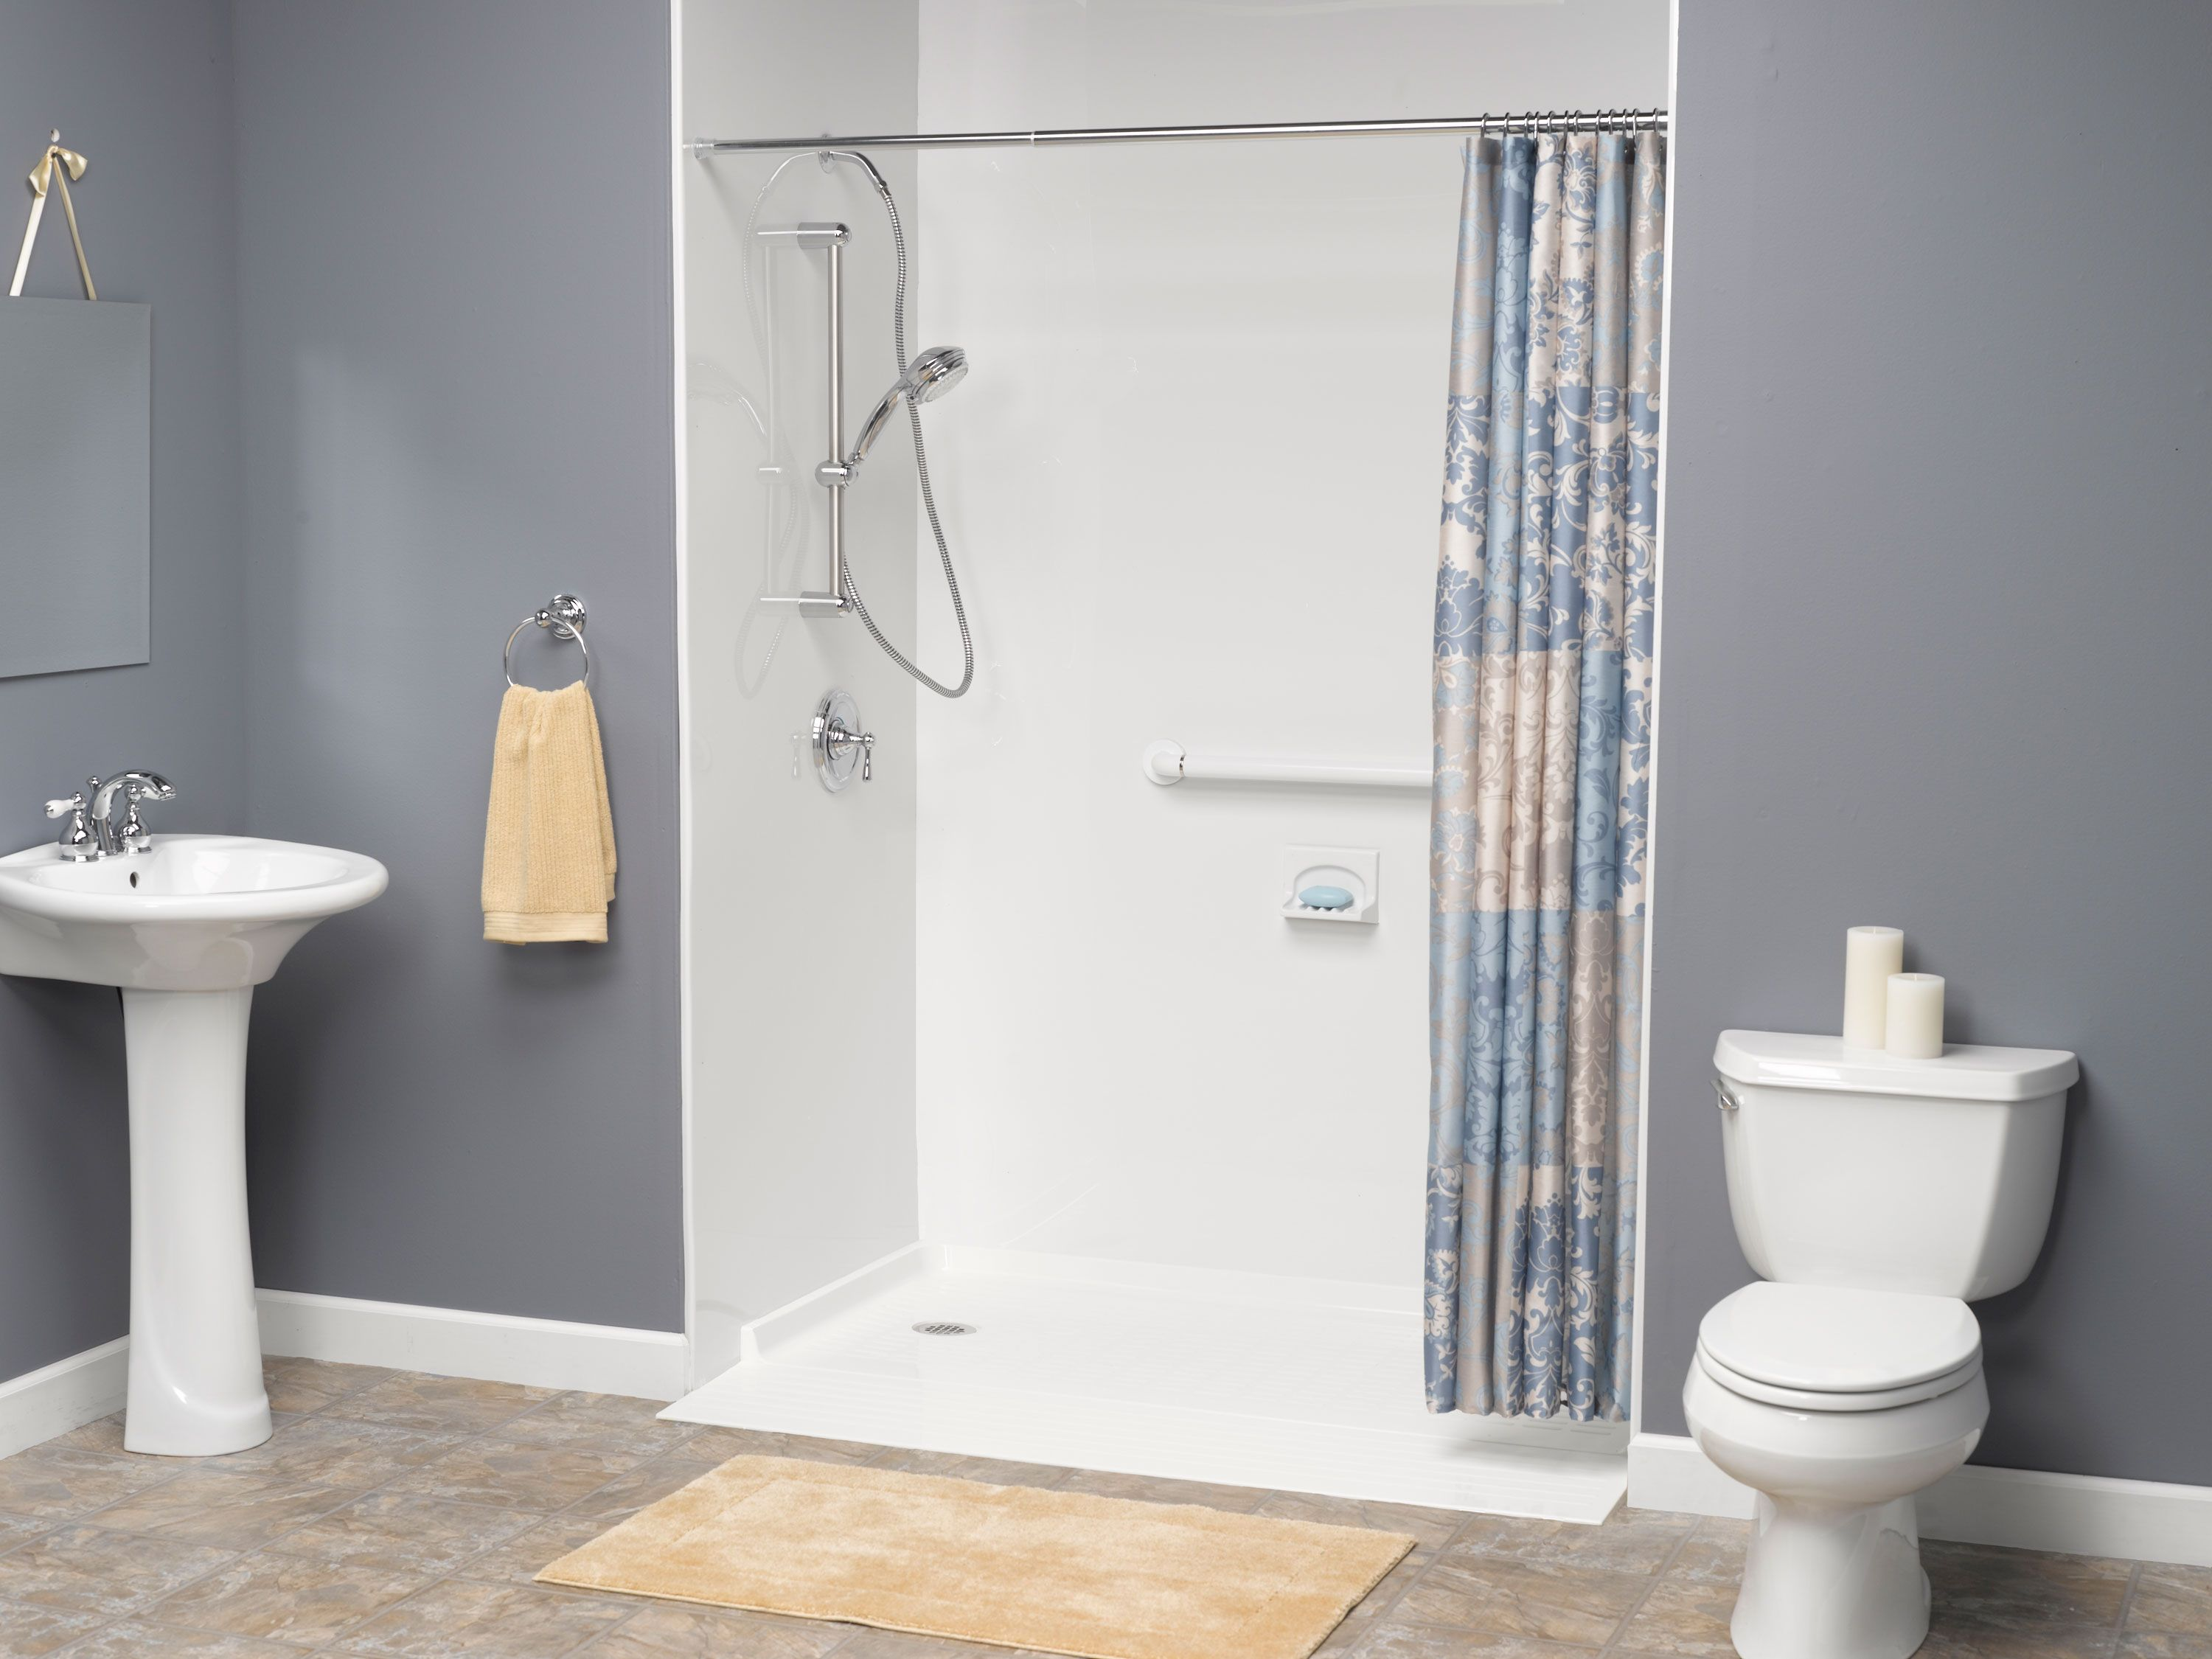 Nice Image Result For Small Walk In Shower With Curtain